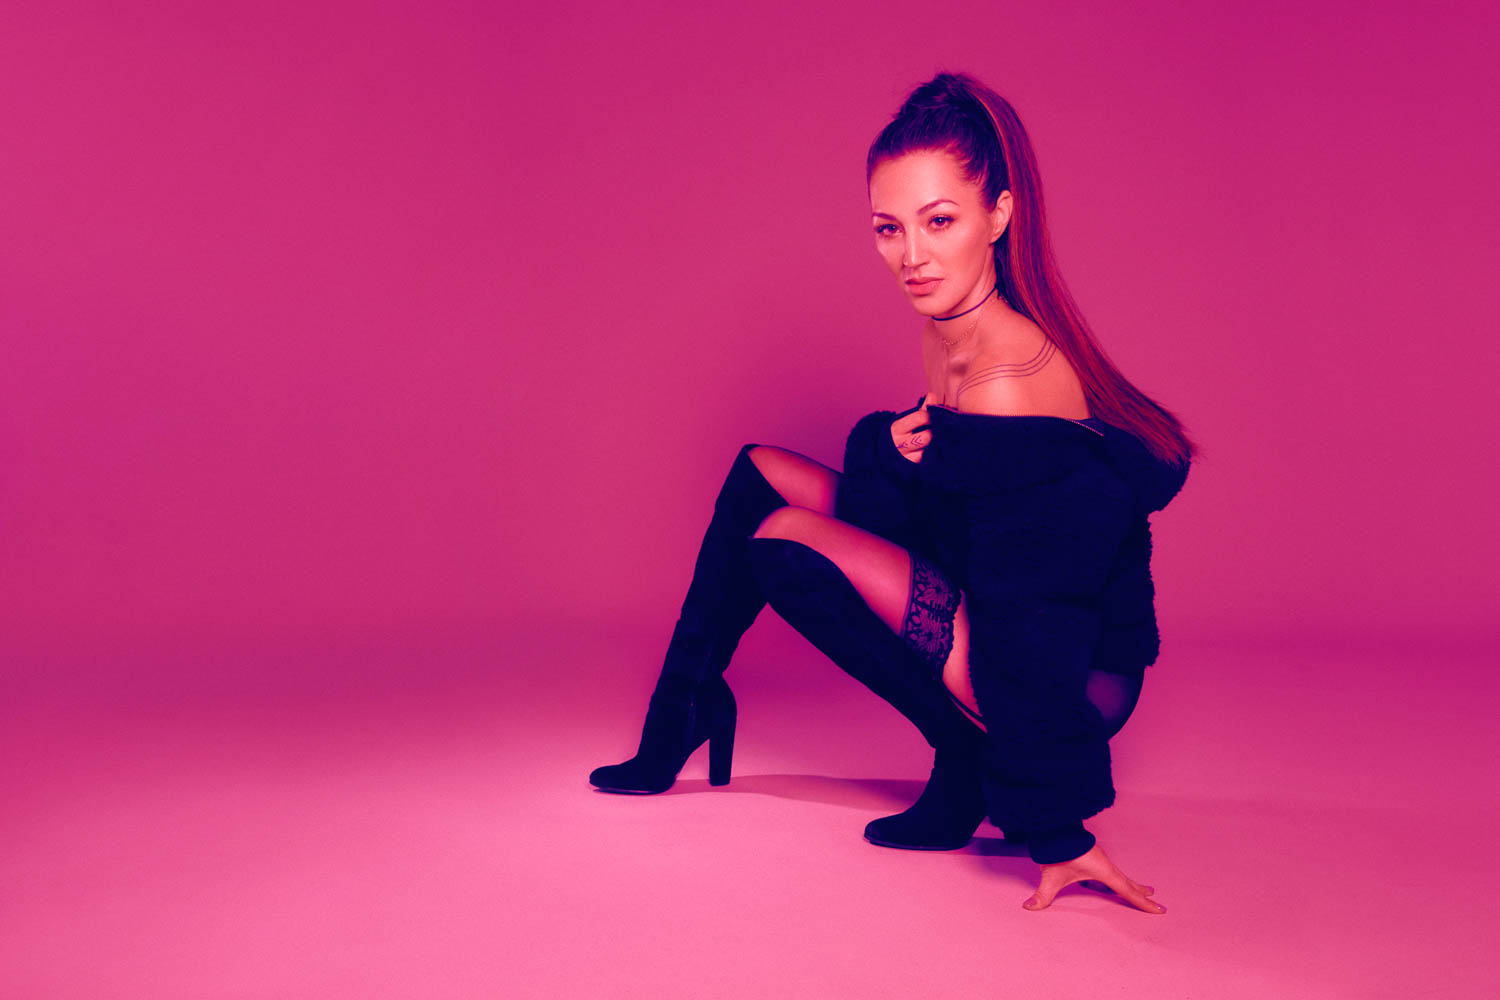 Boudoir session with Ariana Grande ponytail hair